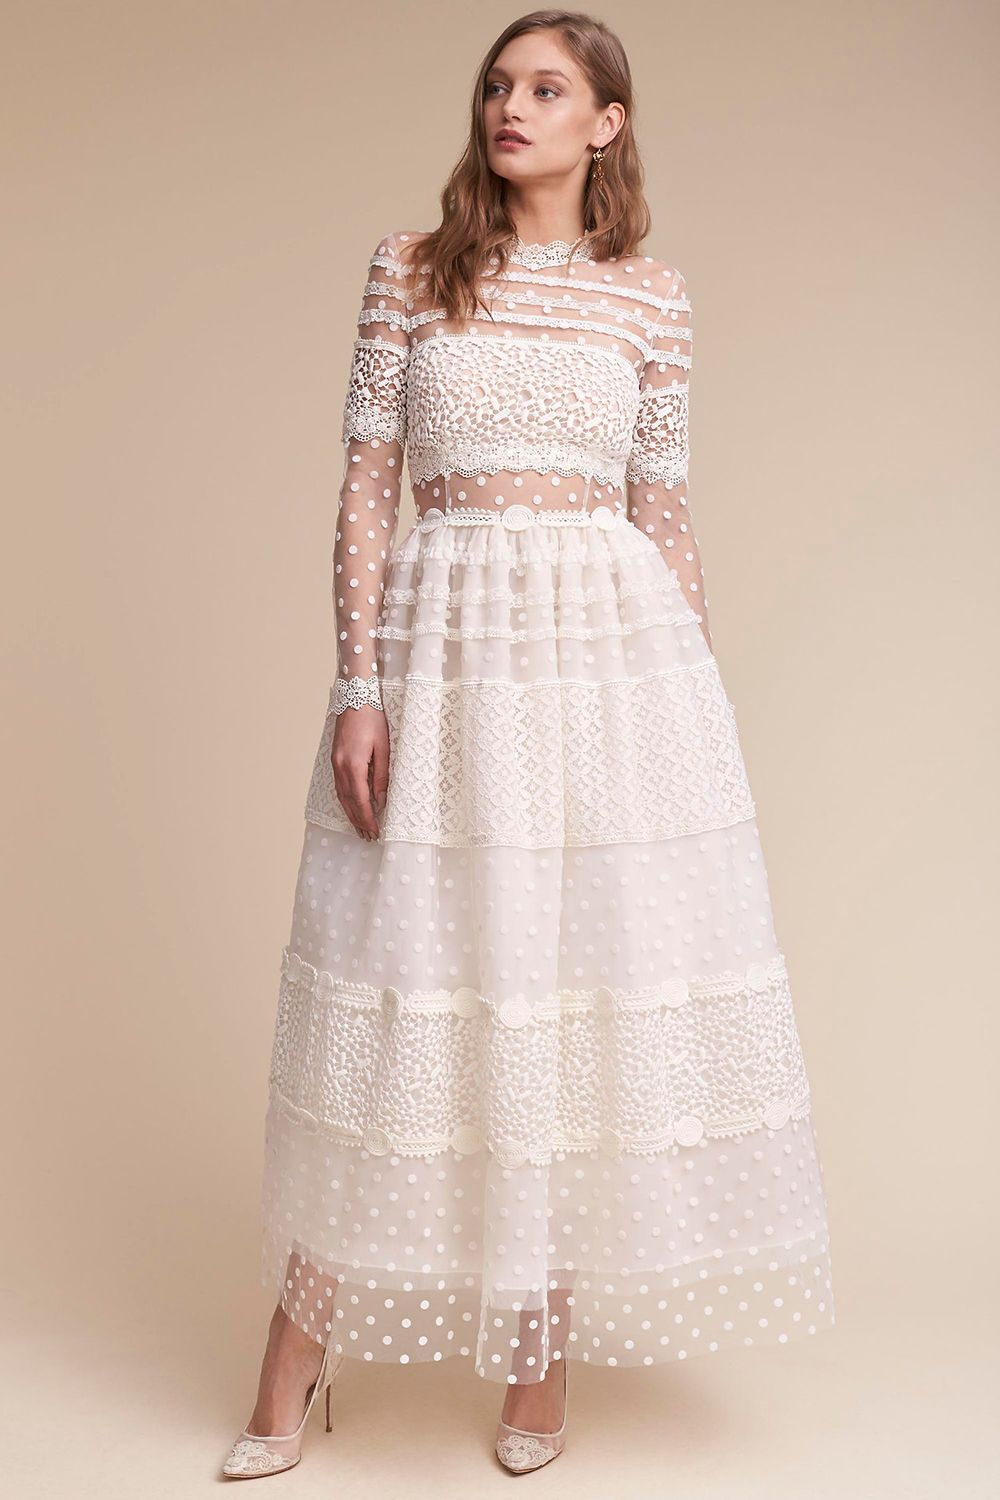 "<p>This Swiss-dot meringue pouf of a dress is also called the ""Keaton."" So you have to get it.</p><p>$3,600, <a href=""http://www.bhldn.com/shop-the-bride-wedding-dresses/keaton-gown/productOptionIDS/fbcaeb8b-b90b-4e9a-9313-32da085940dd"" target=""_blank"" data-tracking-id=""recirc-text-link"">bhldn.com</a>.</p>"